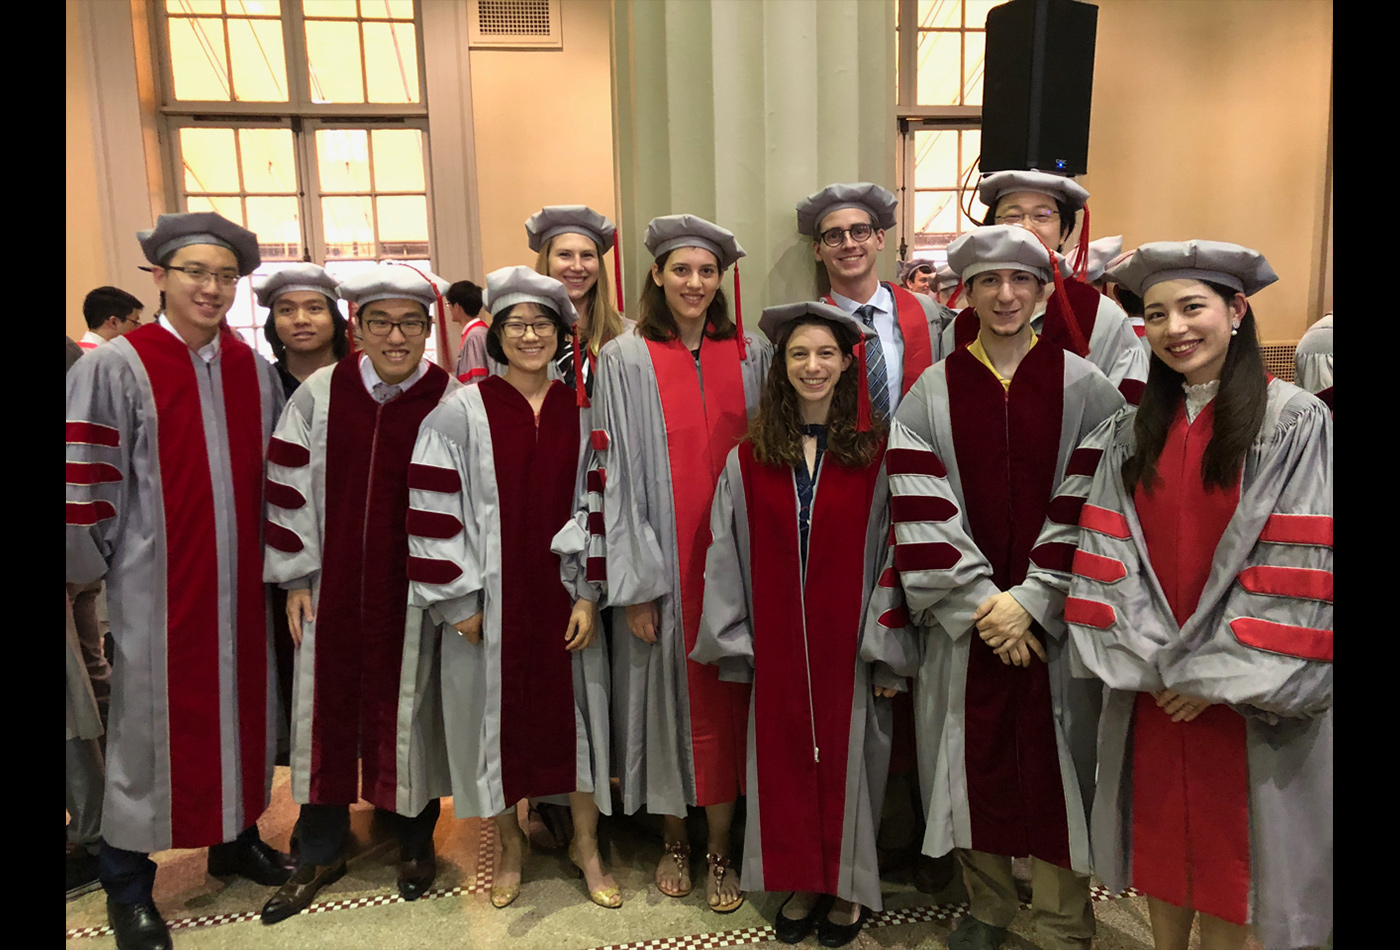 Doctoral students from the Department of Chemistry prepare to receive their hoods.